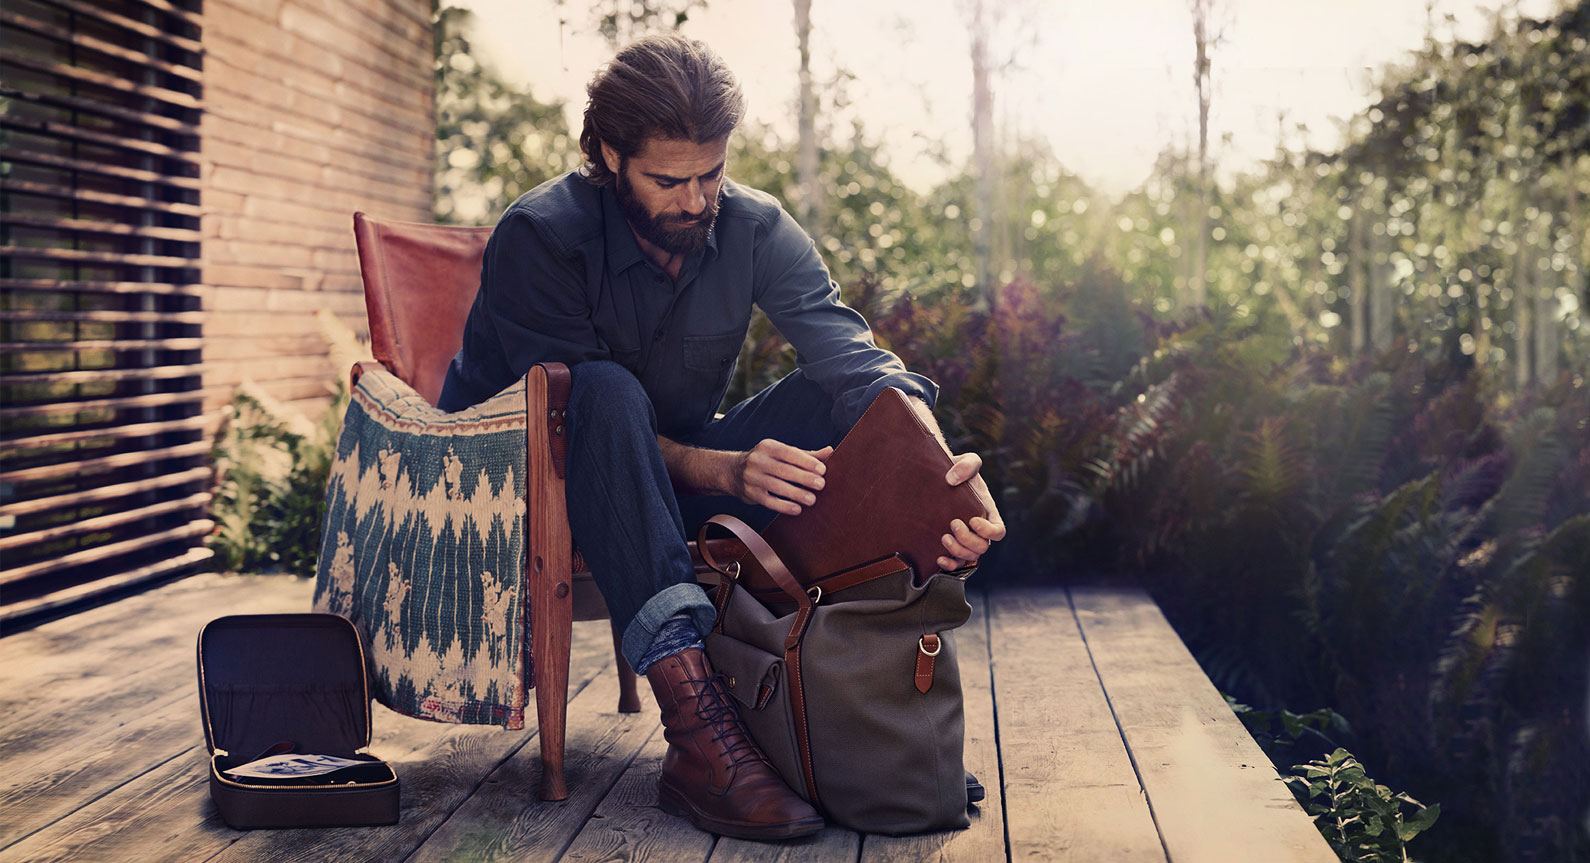 Bags of Character: Introducing the Latest Collection from Mismo